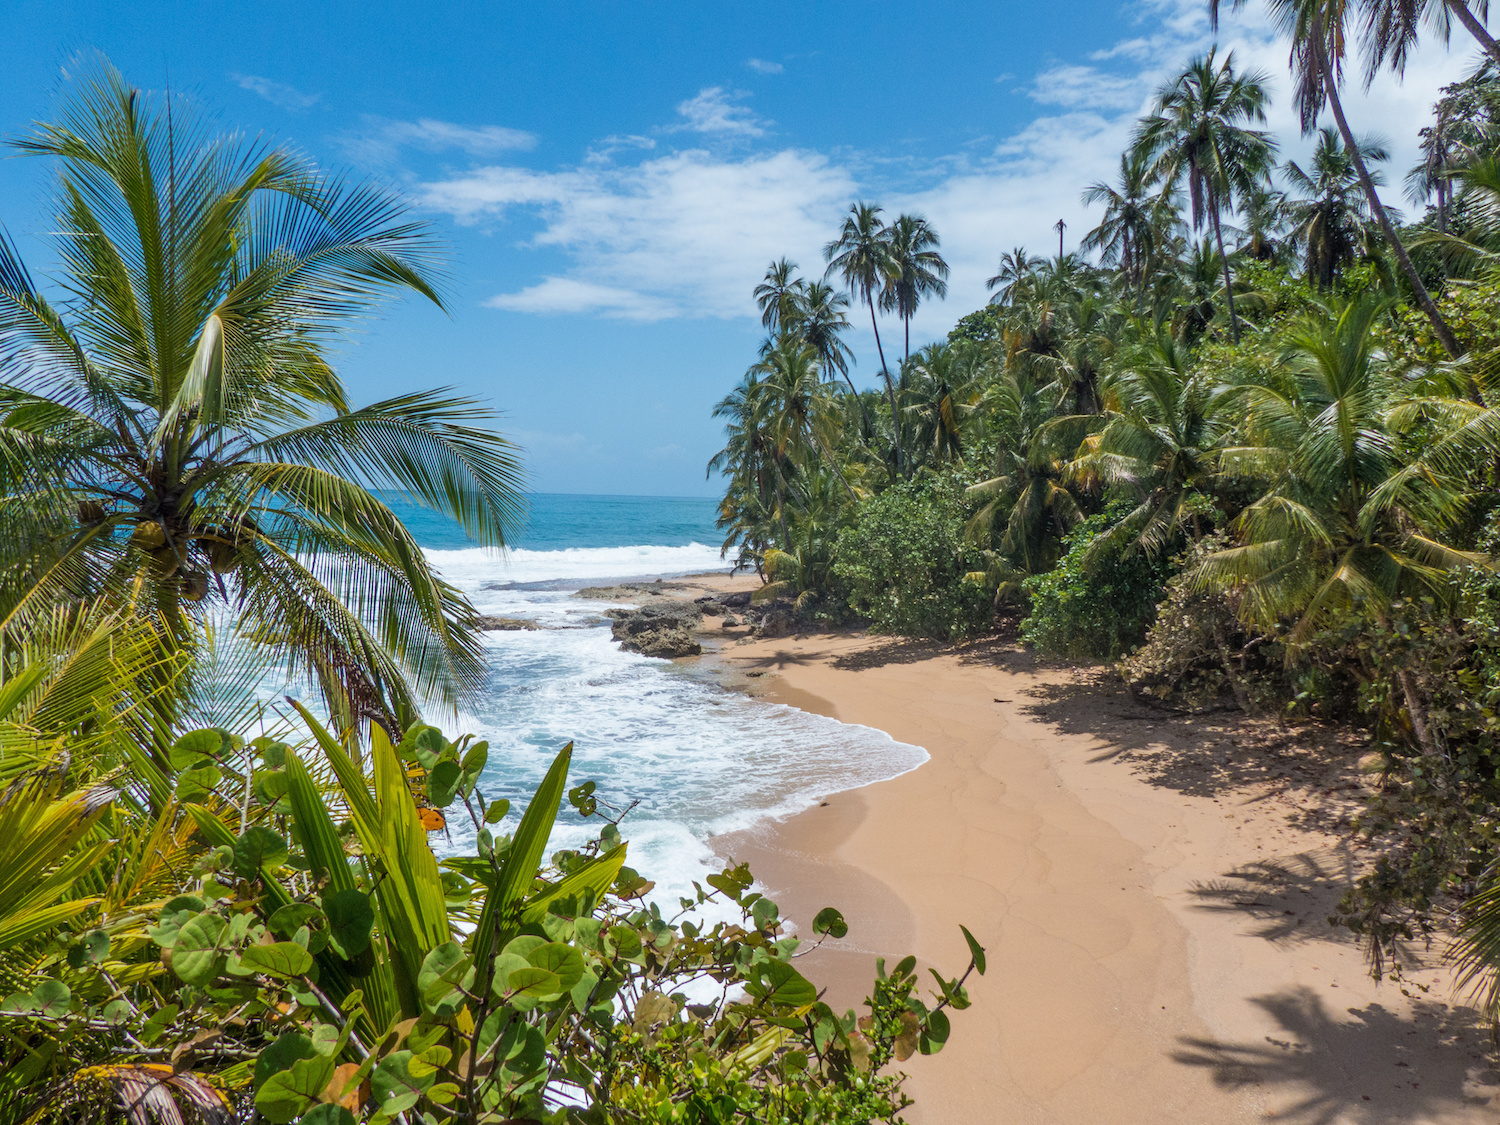 A sandy beach surrounded by palm trees and blue waves. The kind of spot you can only get to on a superyacht charter.